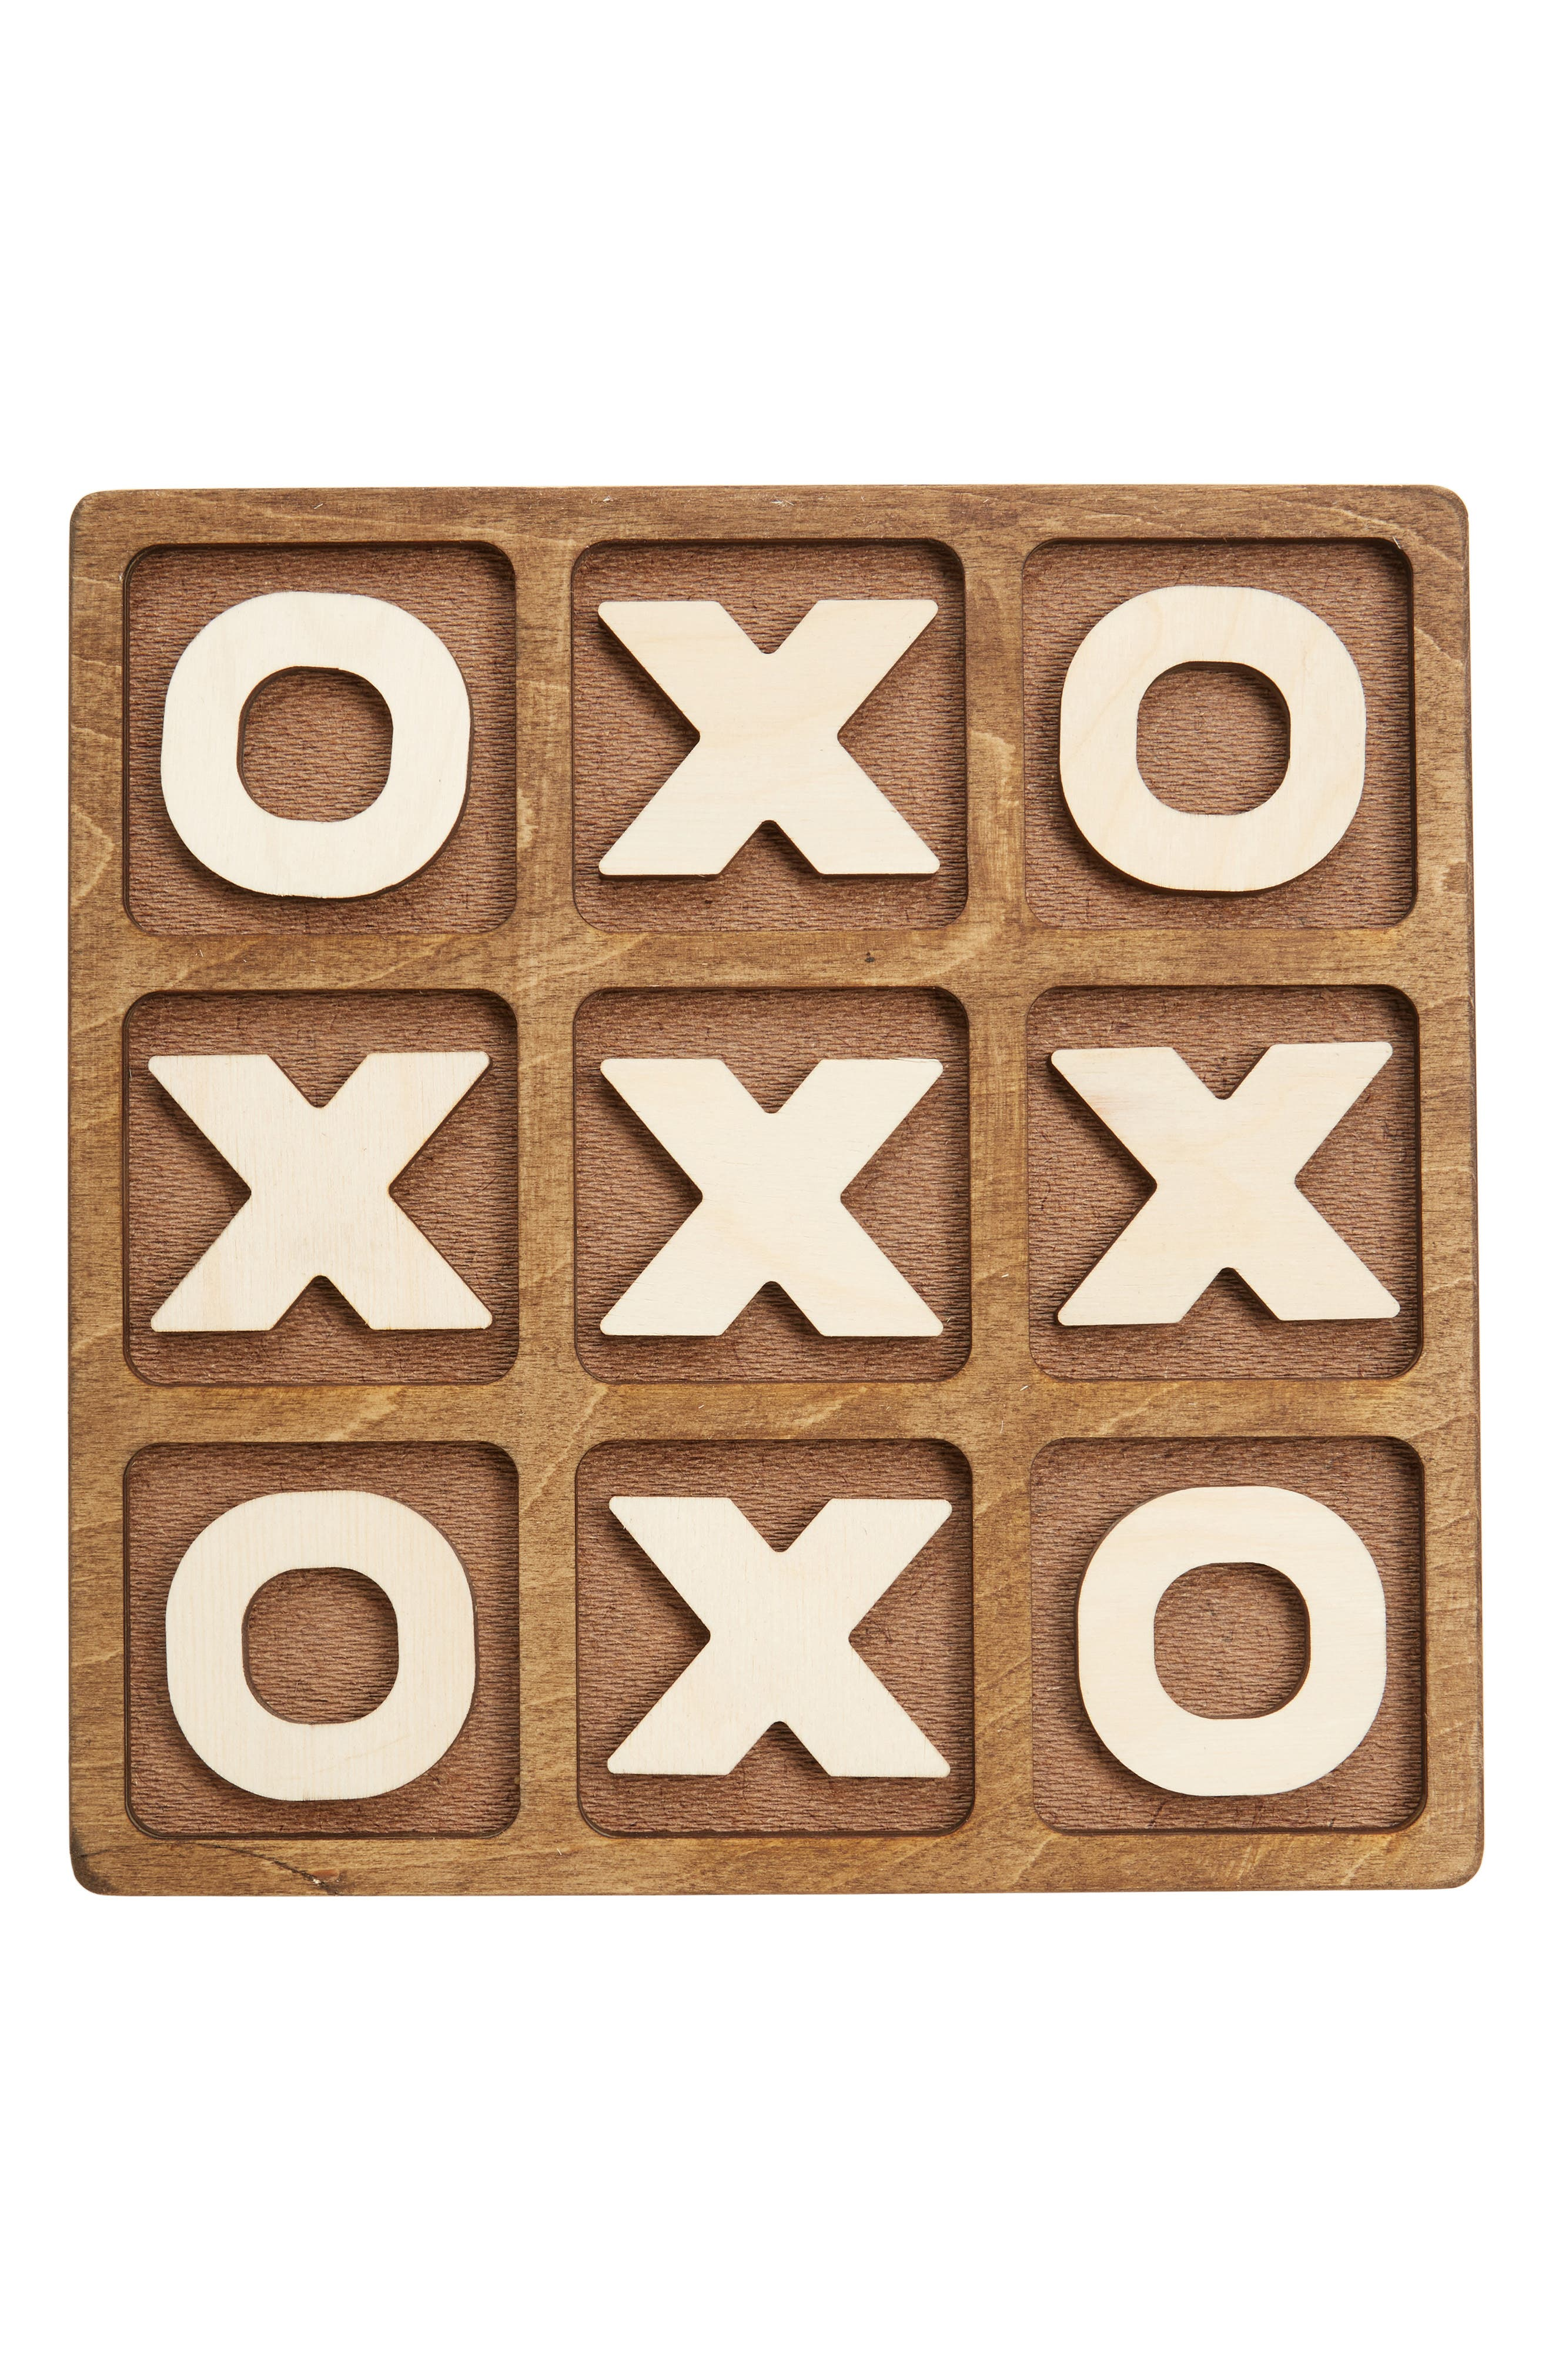 This & That Etc. Toys 11-Piece Classic Tic-Tac-Toe Game